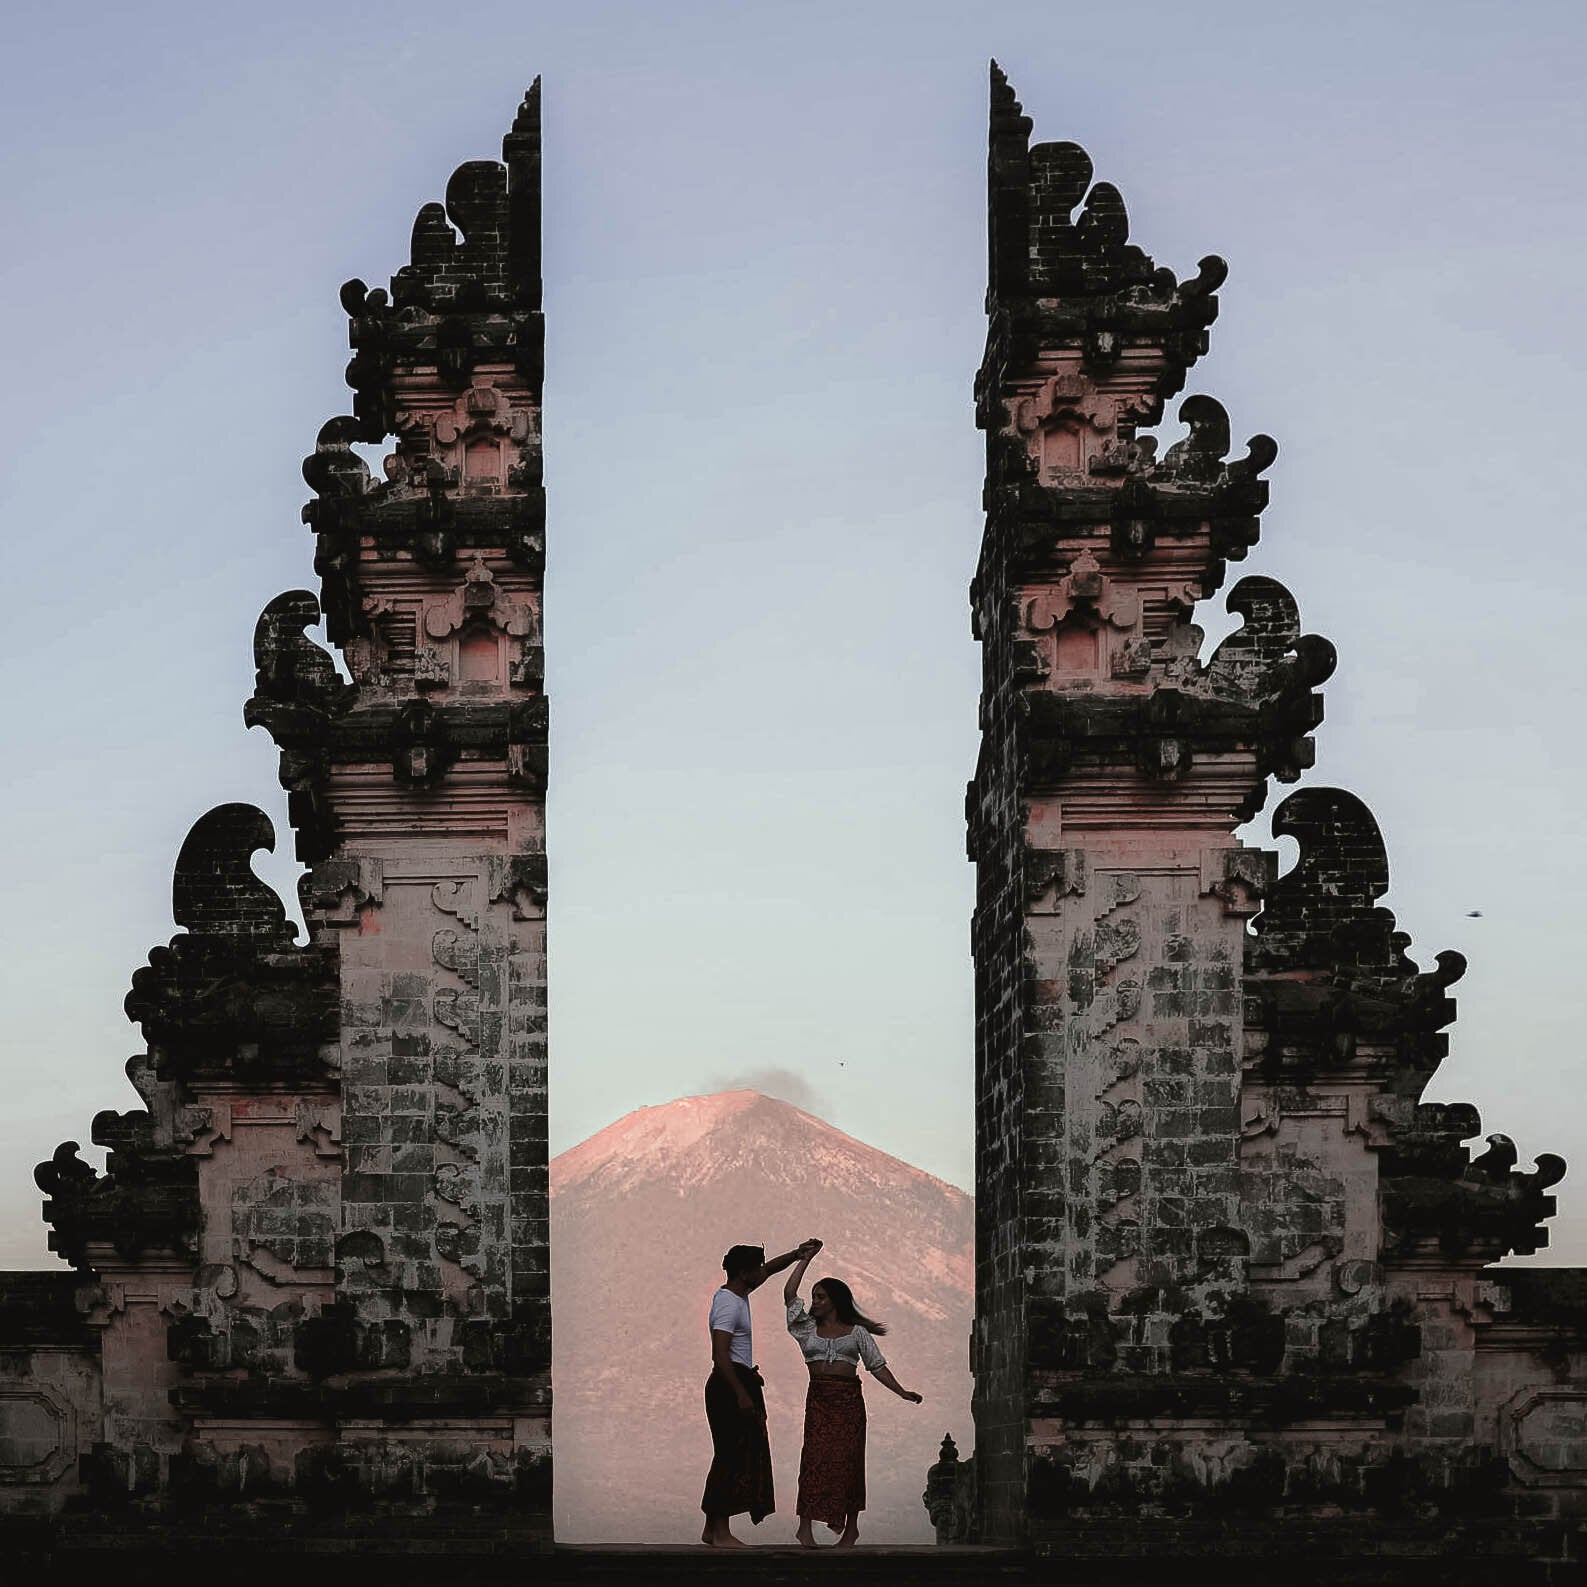 Lost LeBlanc and What The Chic in front of Mount Agung, Bali